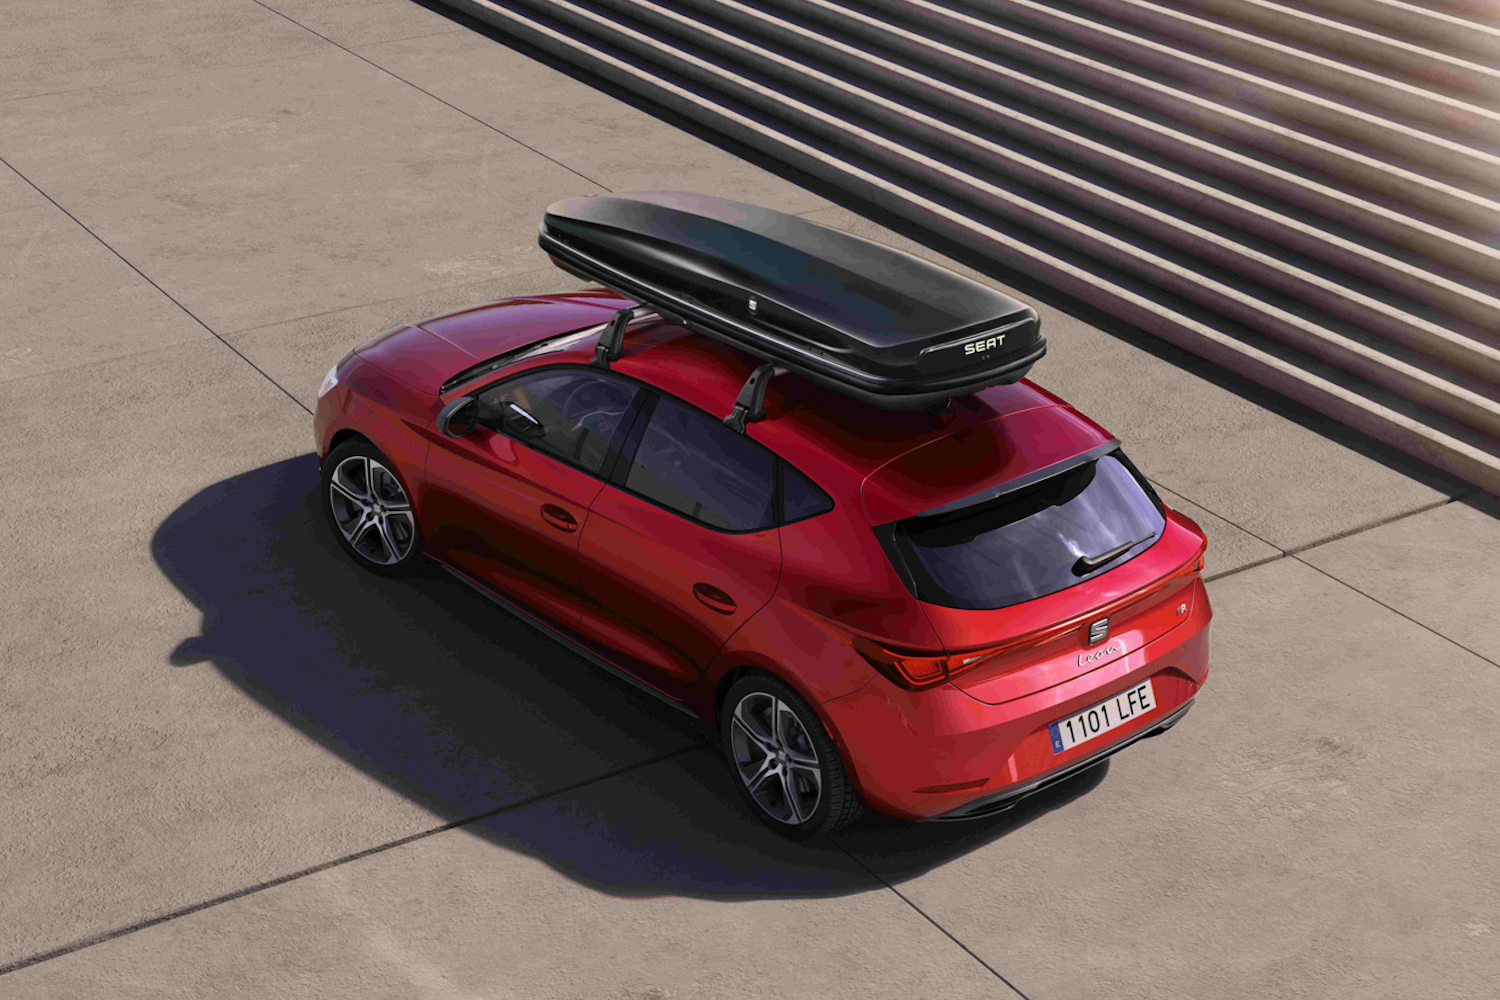 Car News | SEAT provides rental roof-boxes for staycationers | CompleteCar.ie